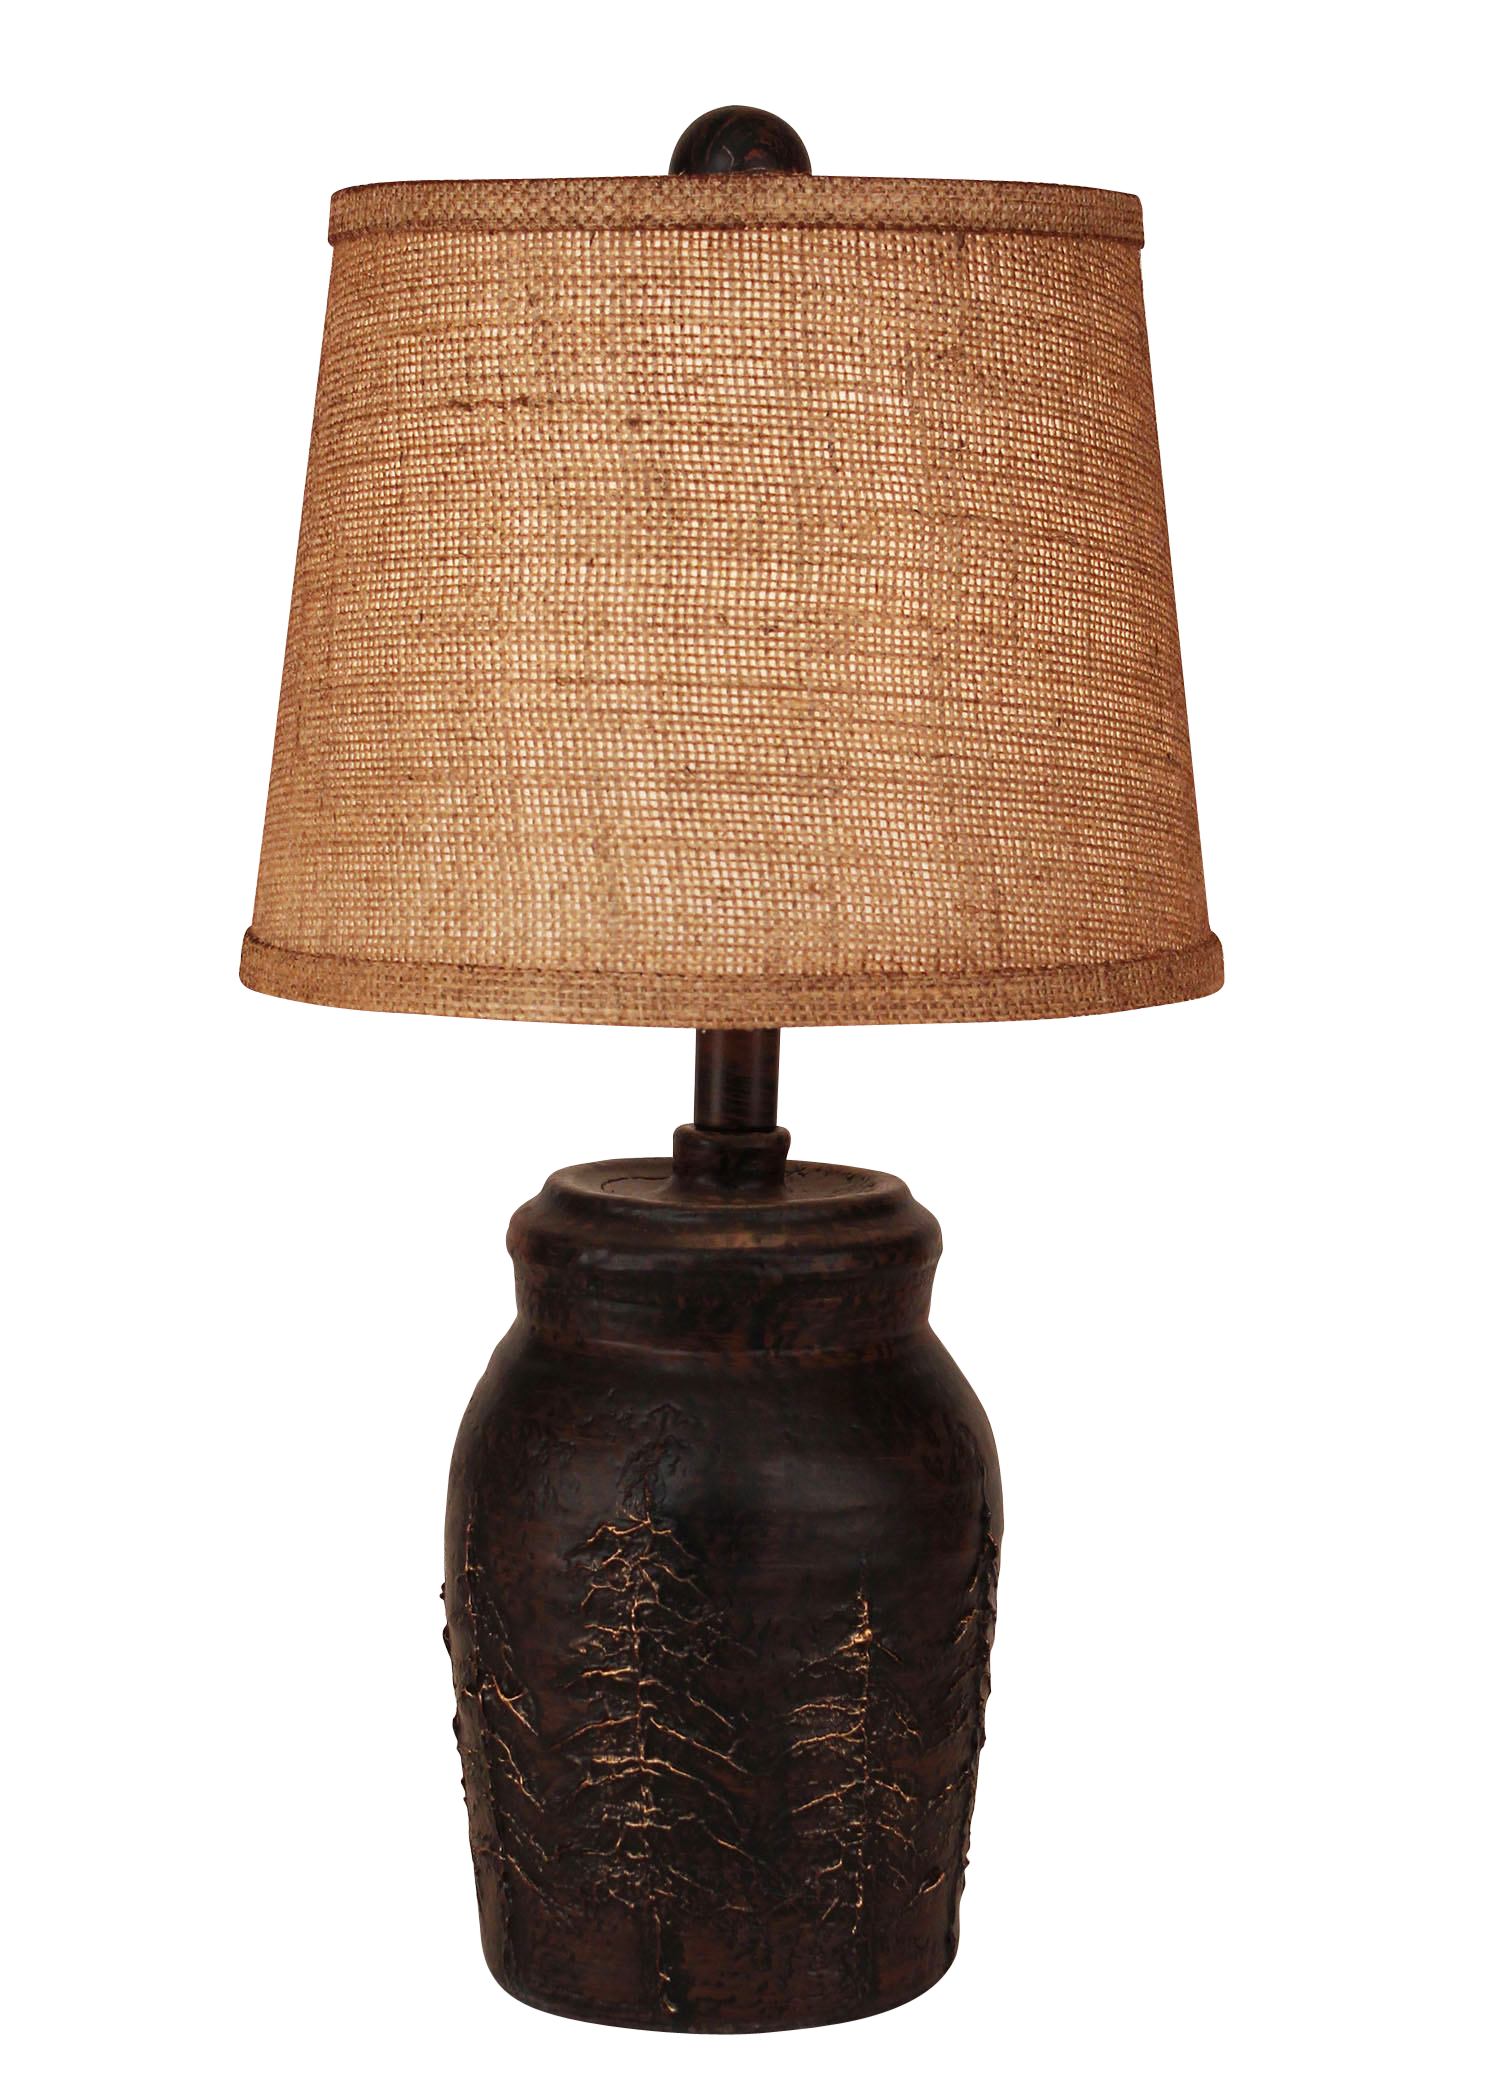 Burnt Sienna Mini Pine Tree Accent Lamp - Coast Lamp Shop